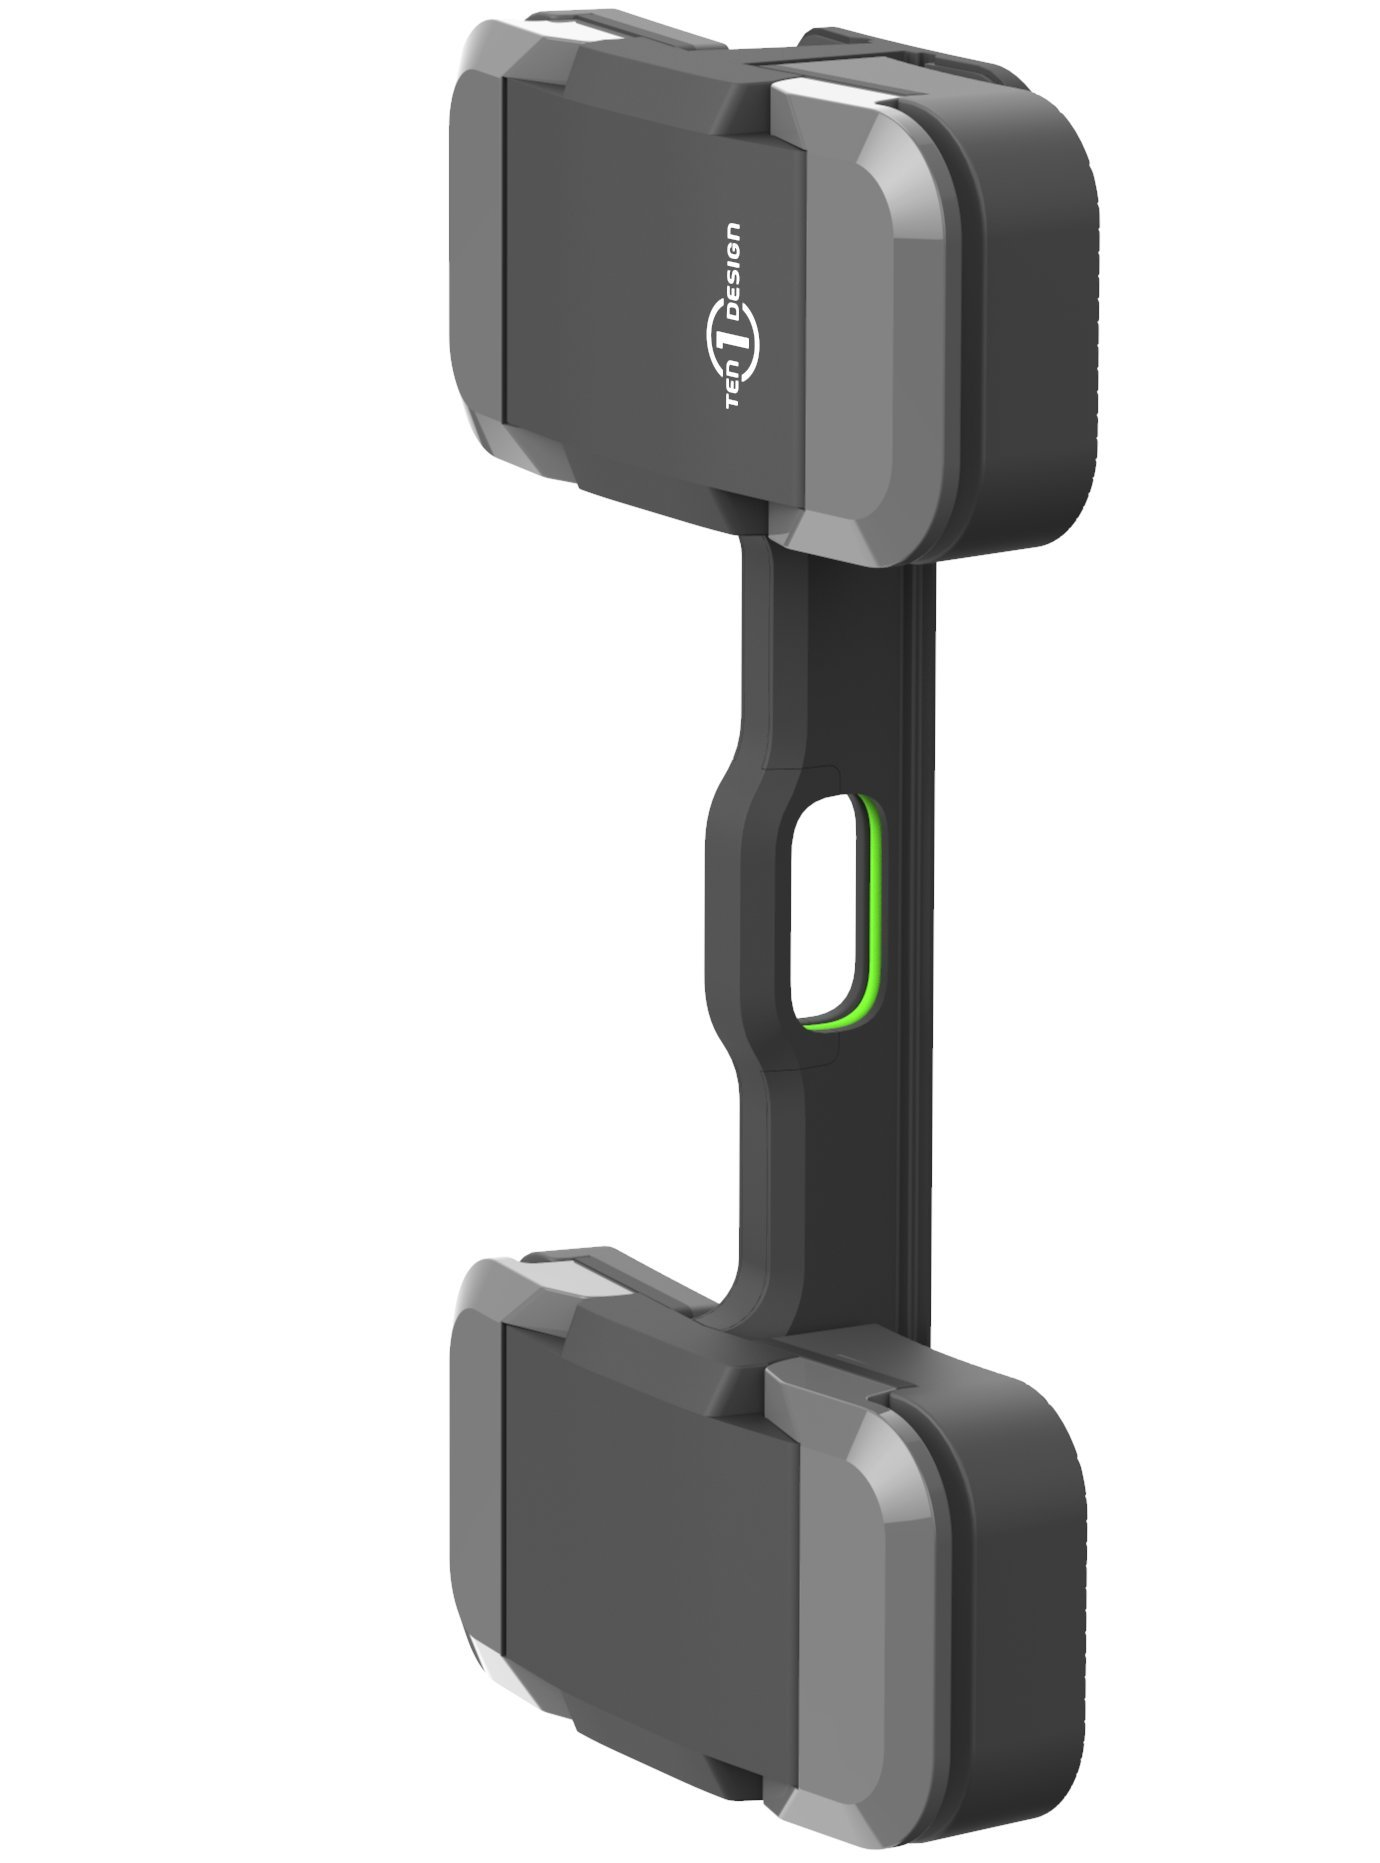 Ten One Design Mountie+ Mount for Sidecar, Large Tablets, iPad Pro, Portable Monitors, Instant Second or Third Display for Your Laptop Computer (T1-MULT-200) - Grey